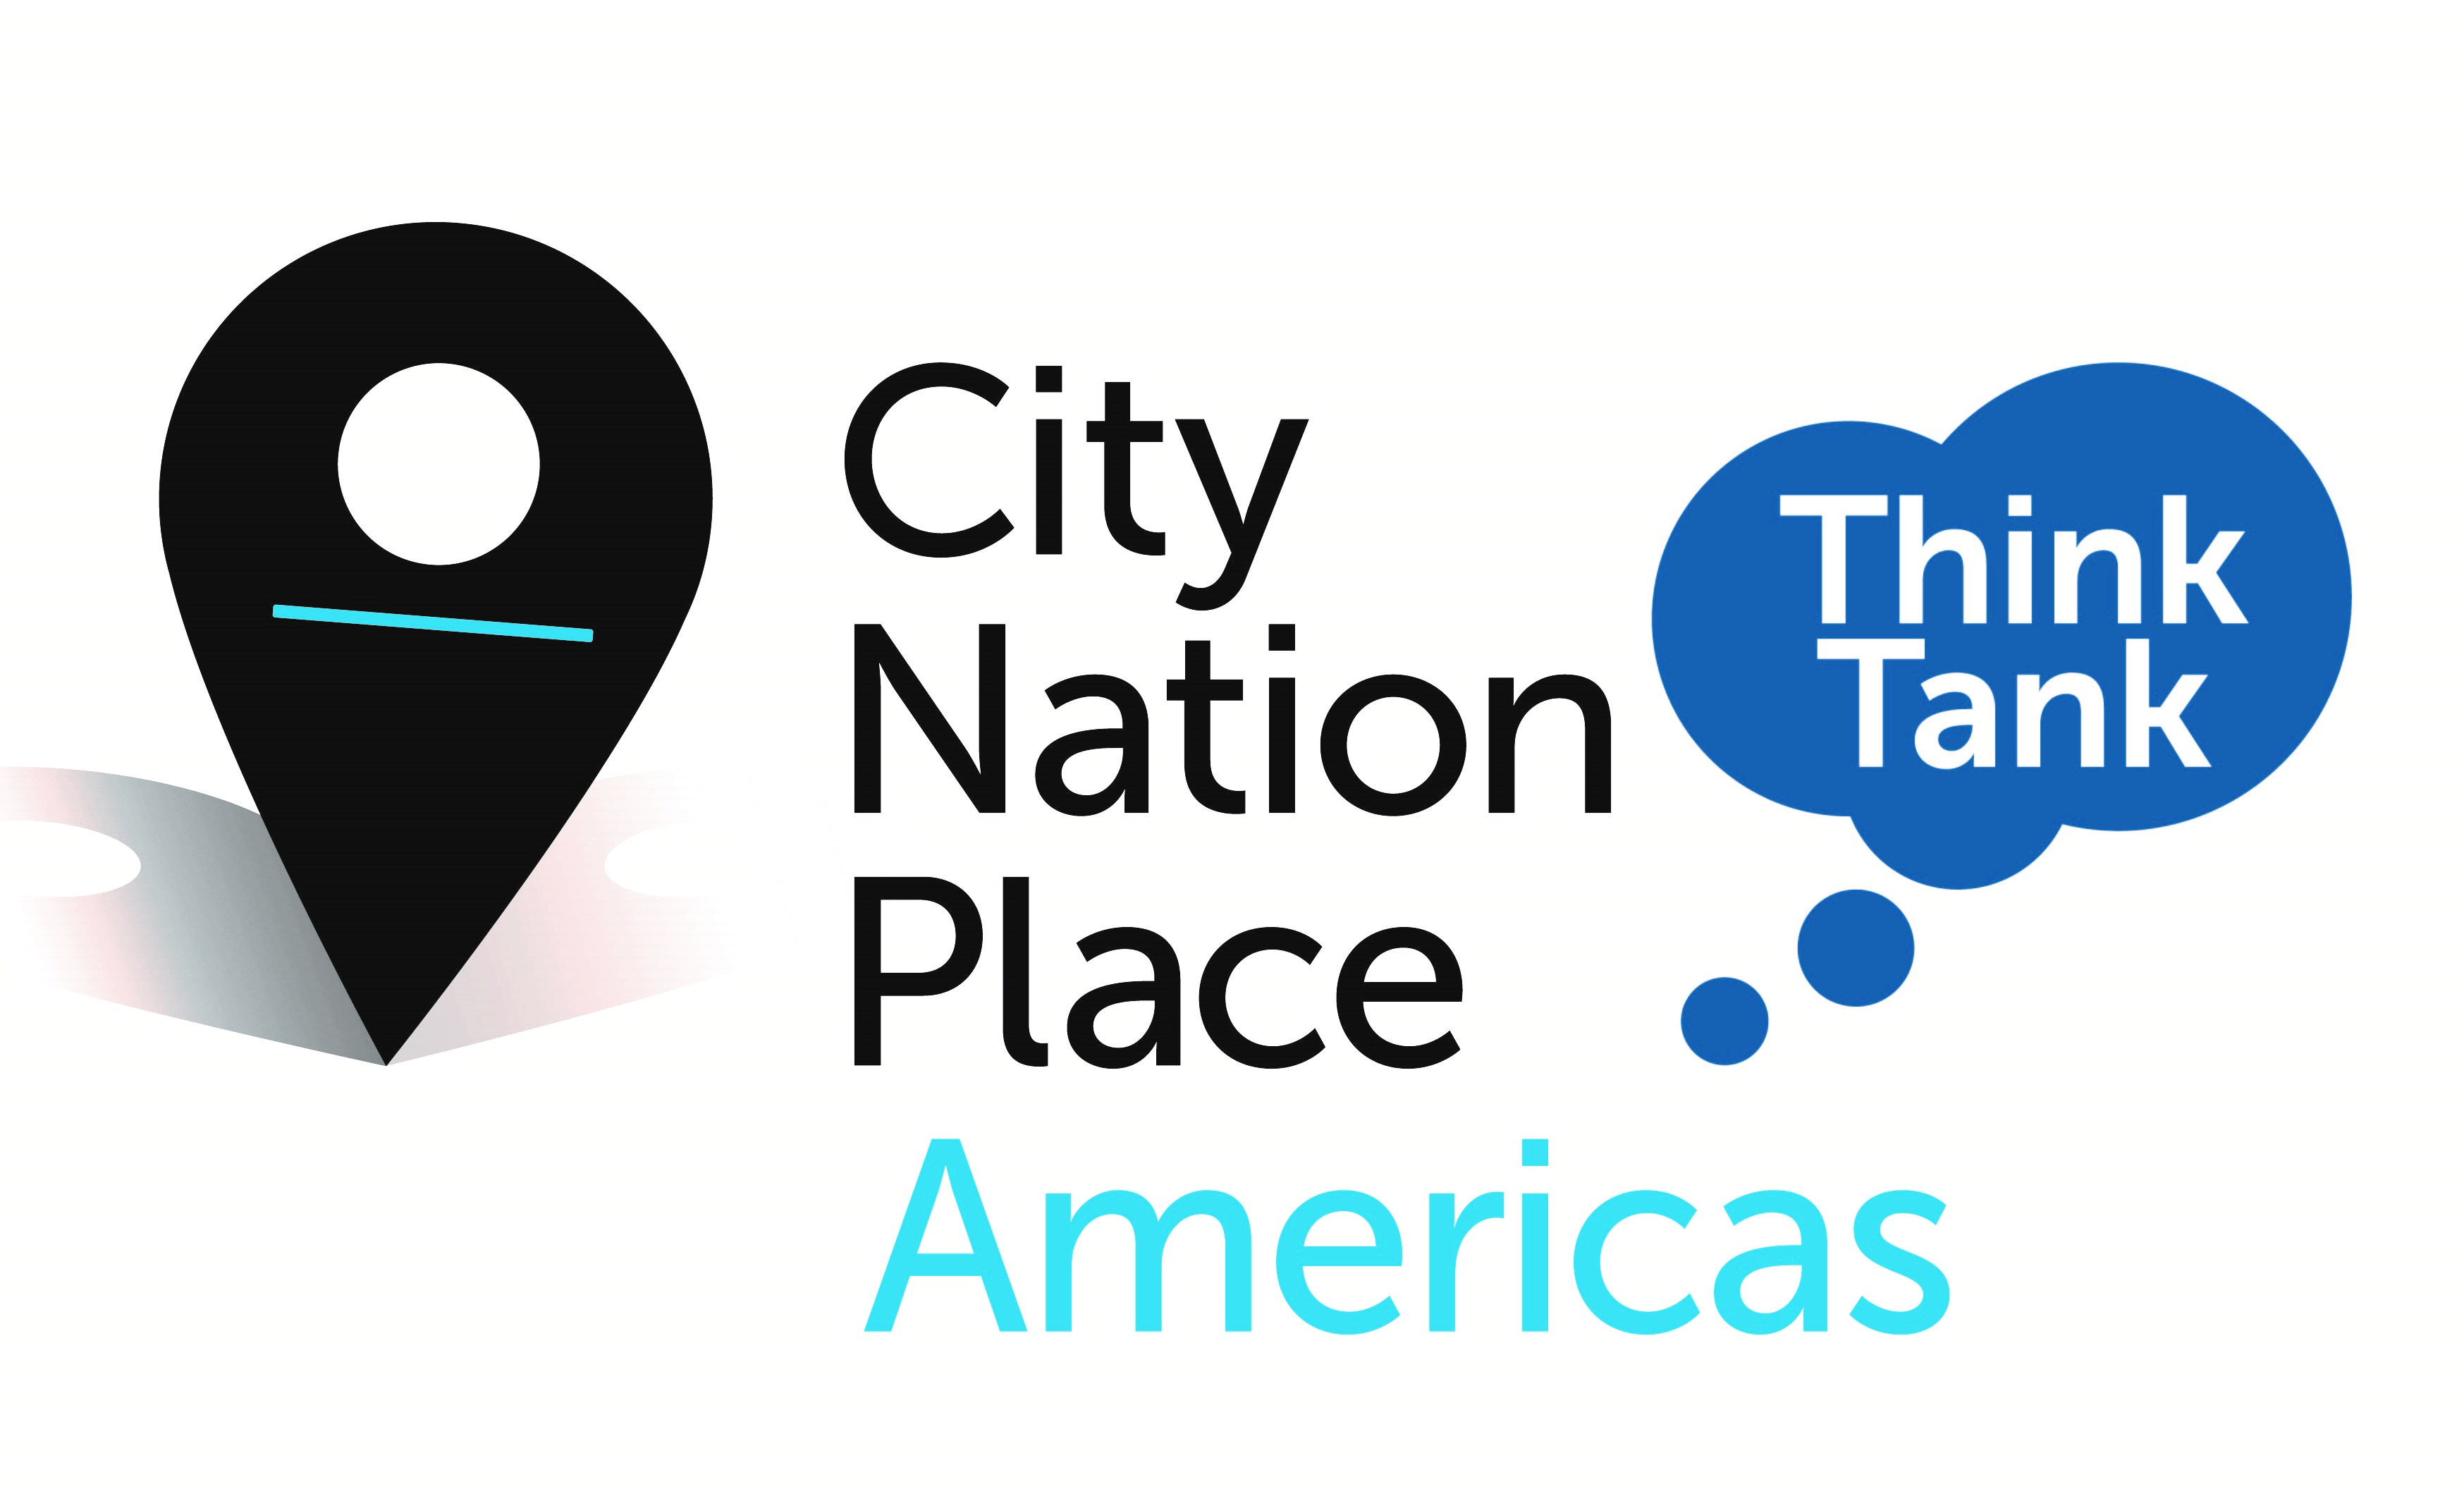 Think Tank City Nation Place Americas Logo